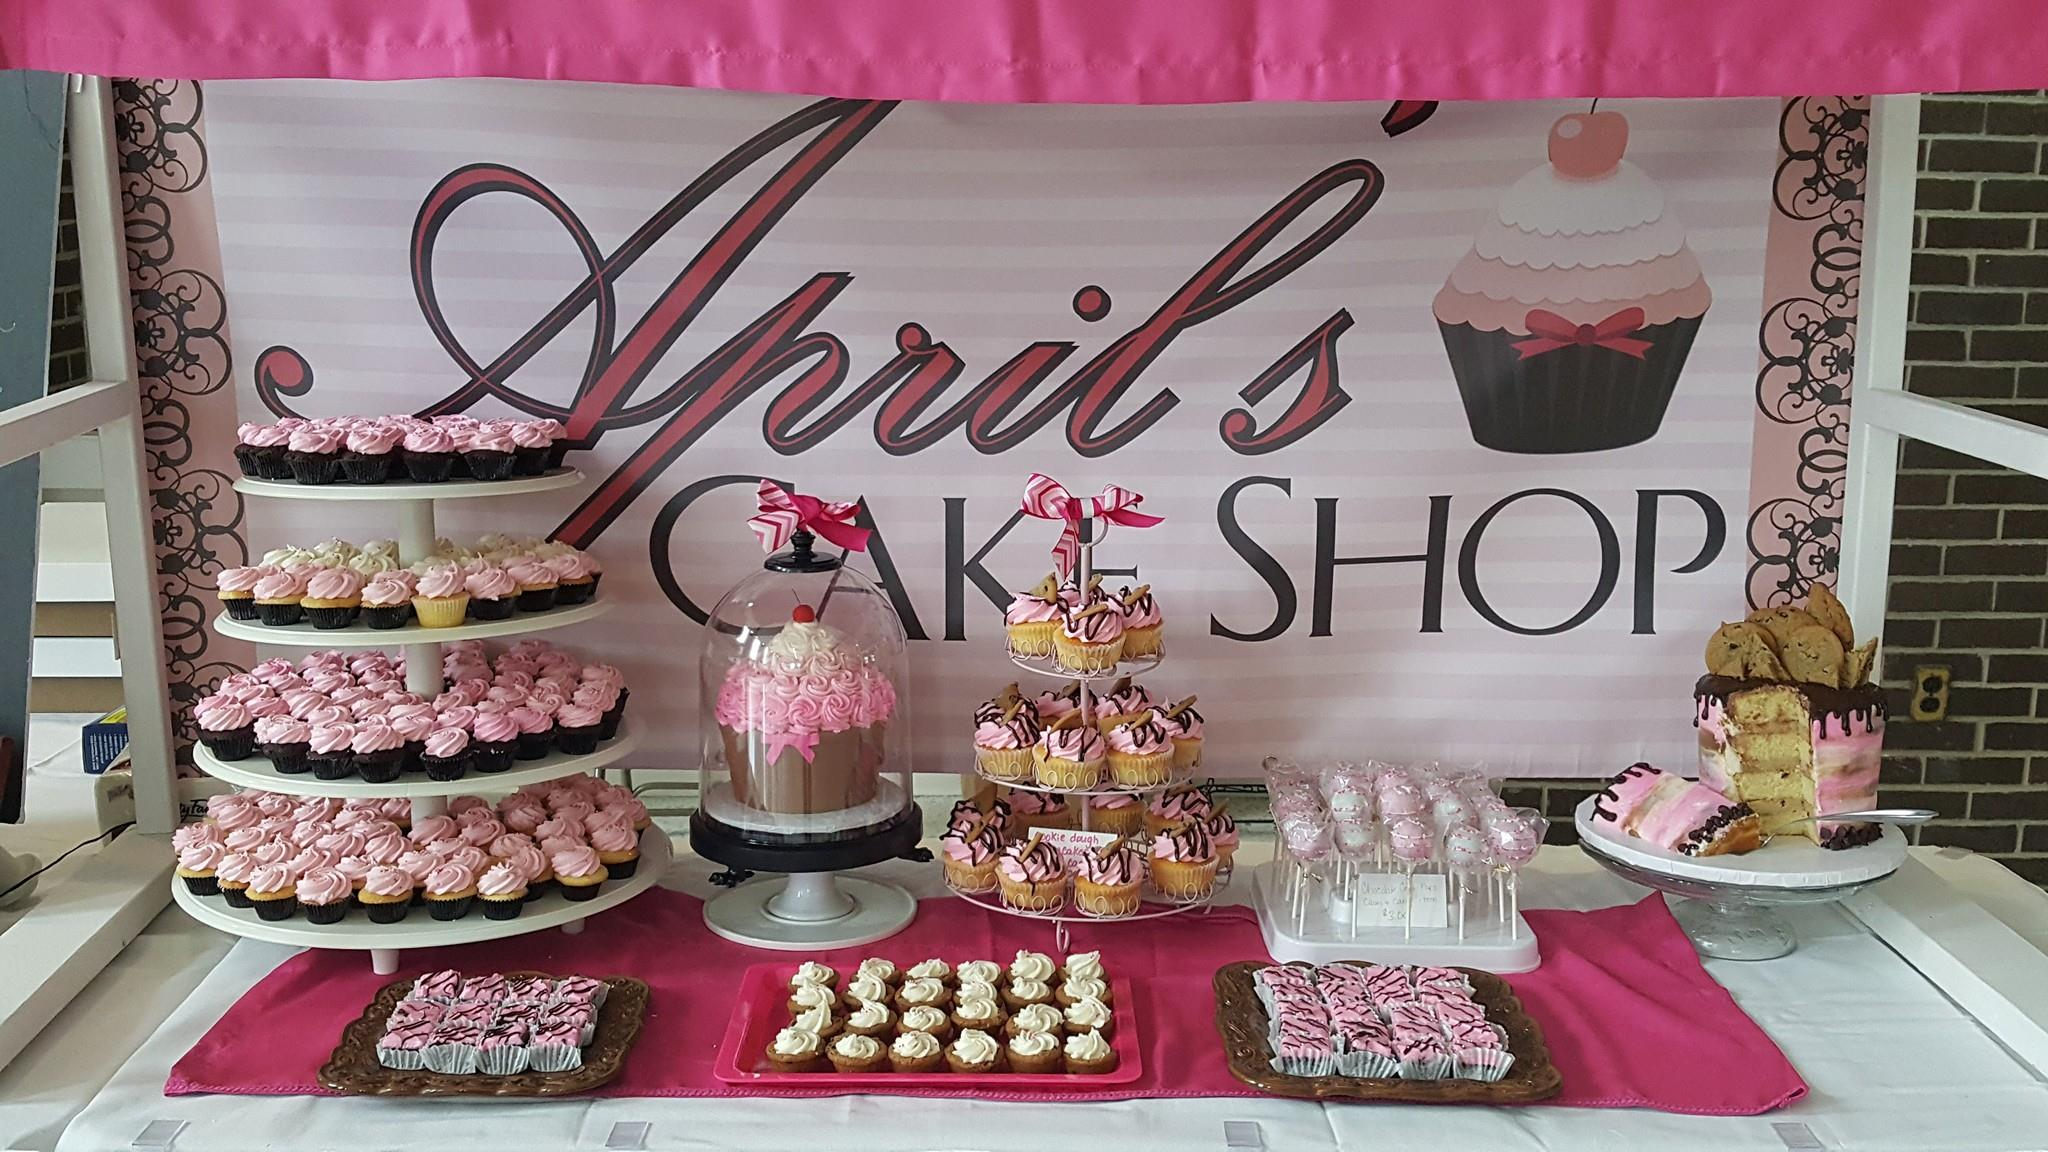 GIFT CERTIFICATE <br/> Donated by: APRIL'S CAKE SHOP <br/> Valued at: $50